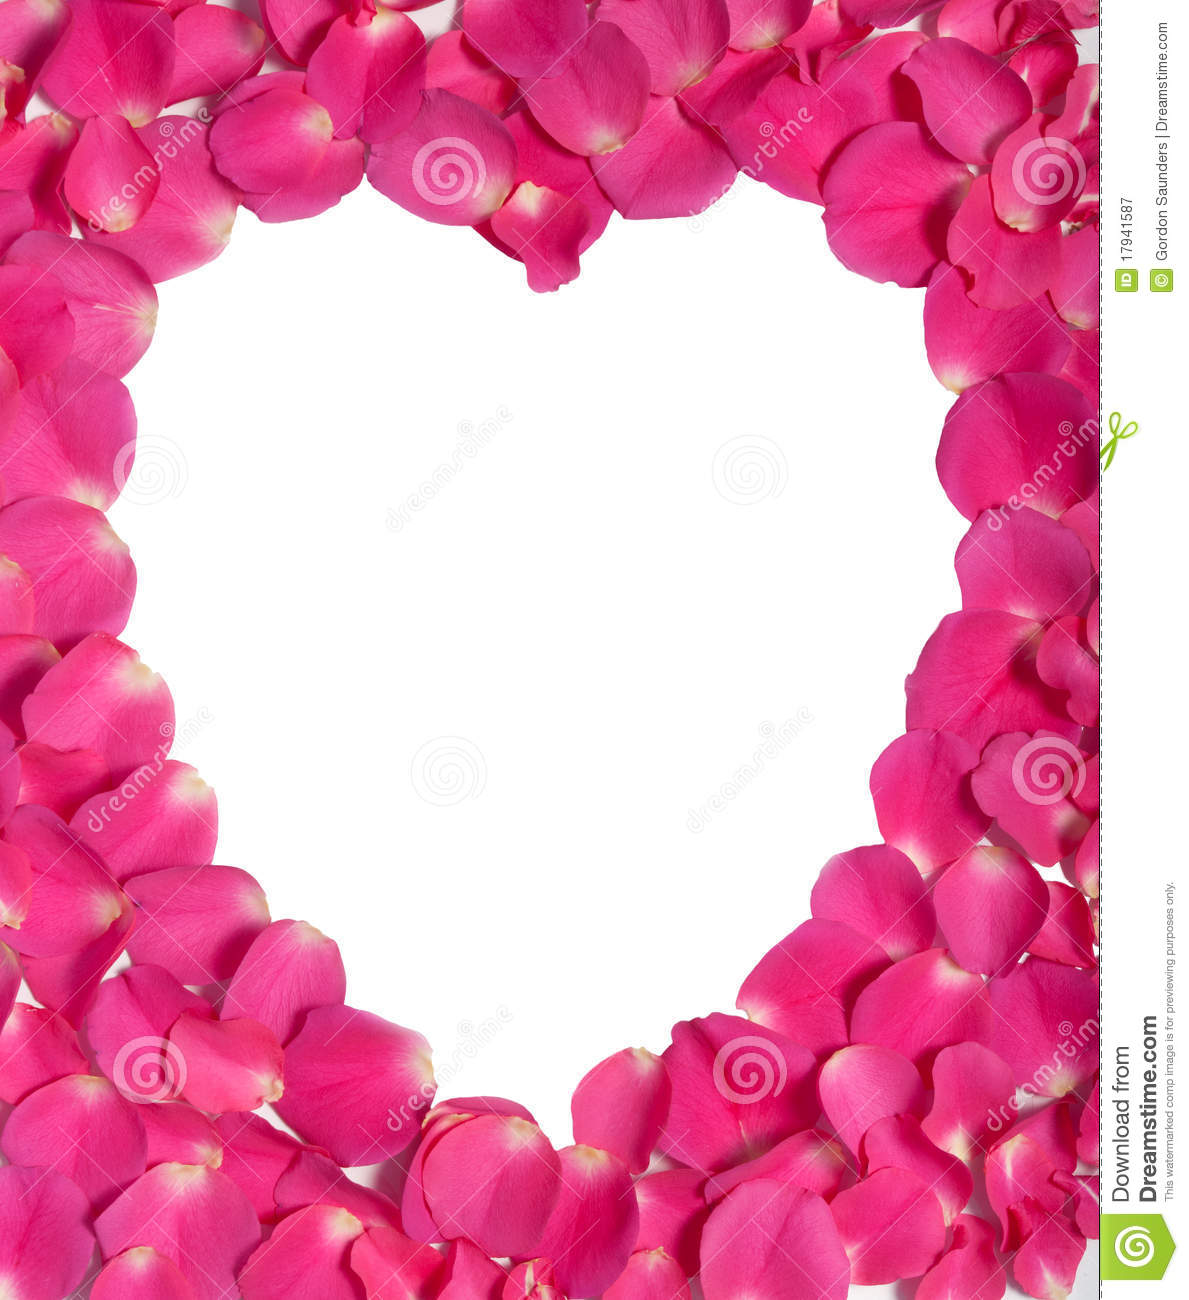 White Heart And Pink Rose Petals Royalty Free Stock